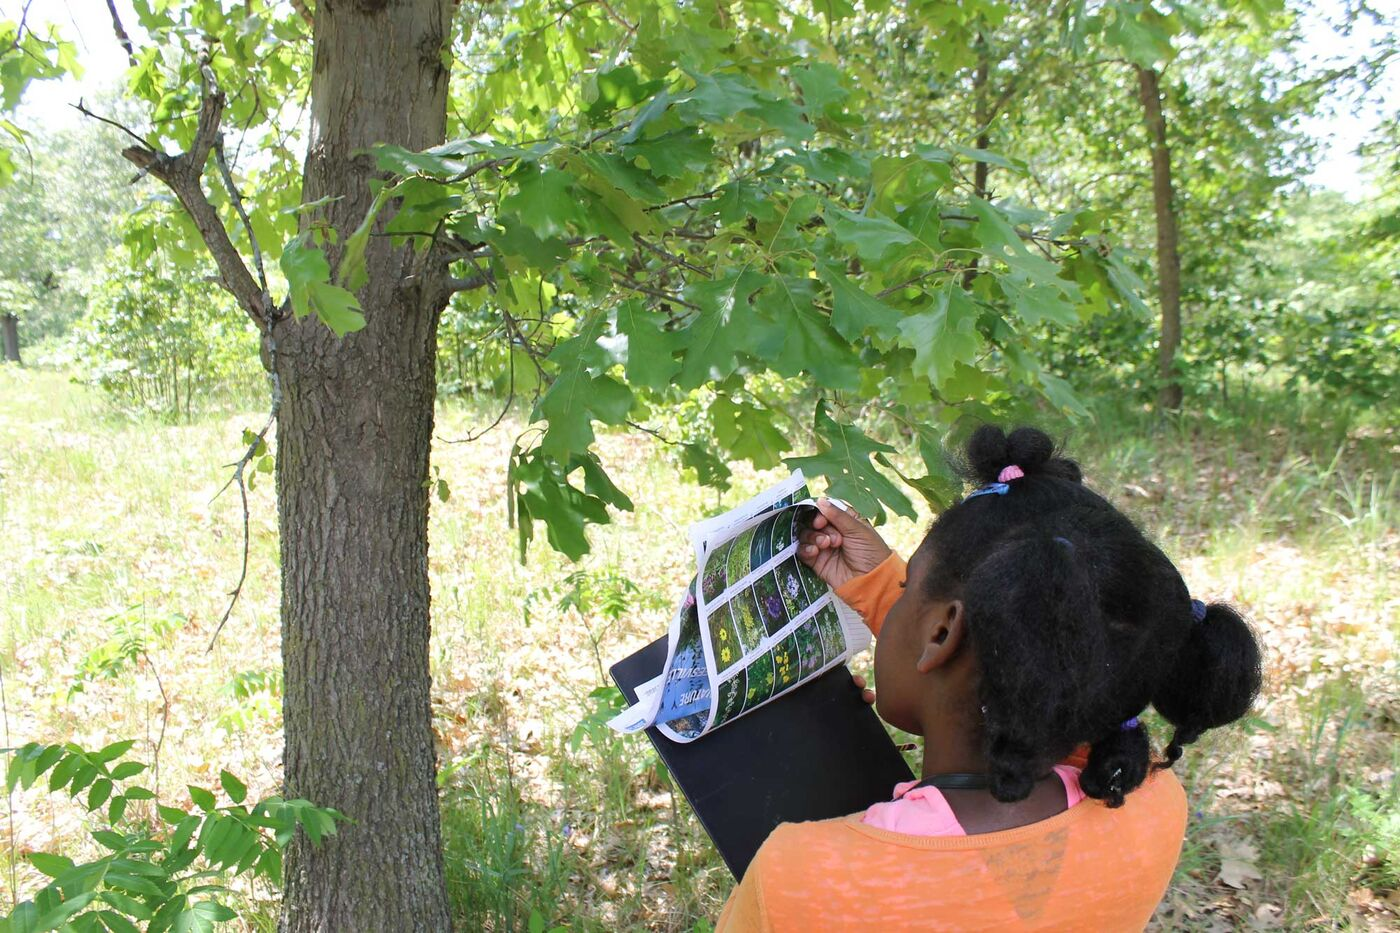 Outside, a young girl flips through pages of plant photos.